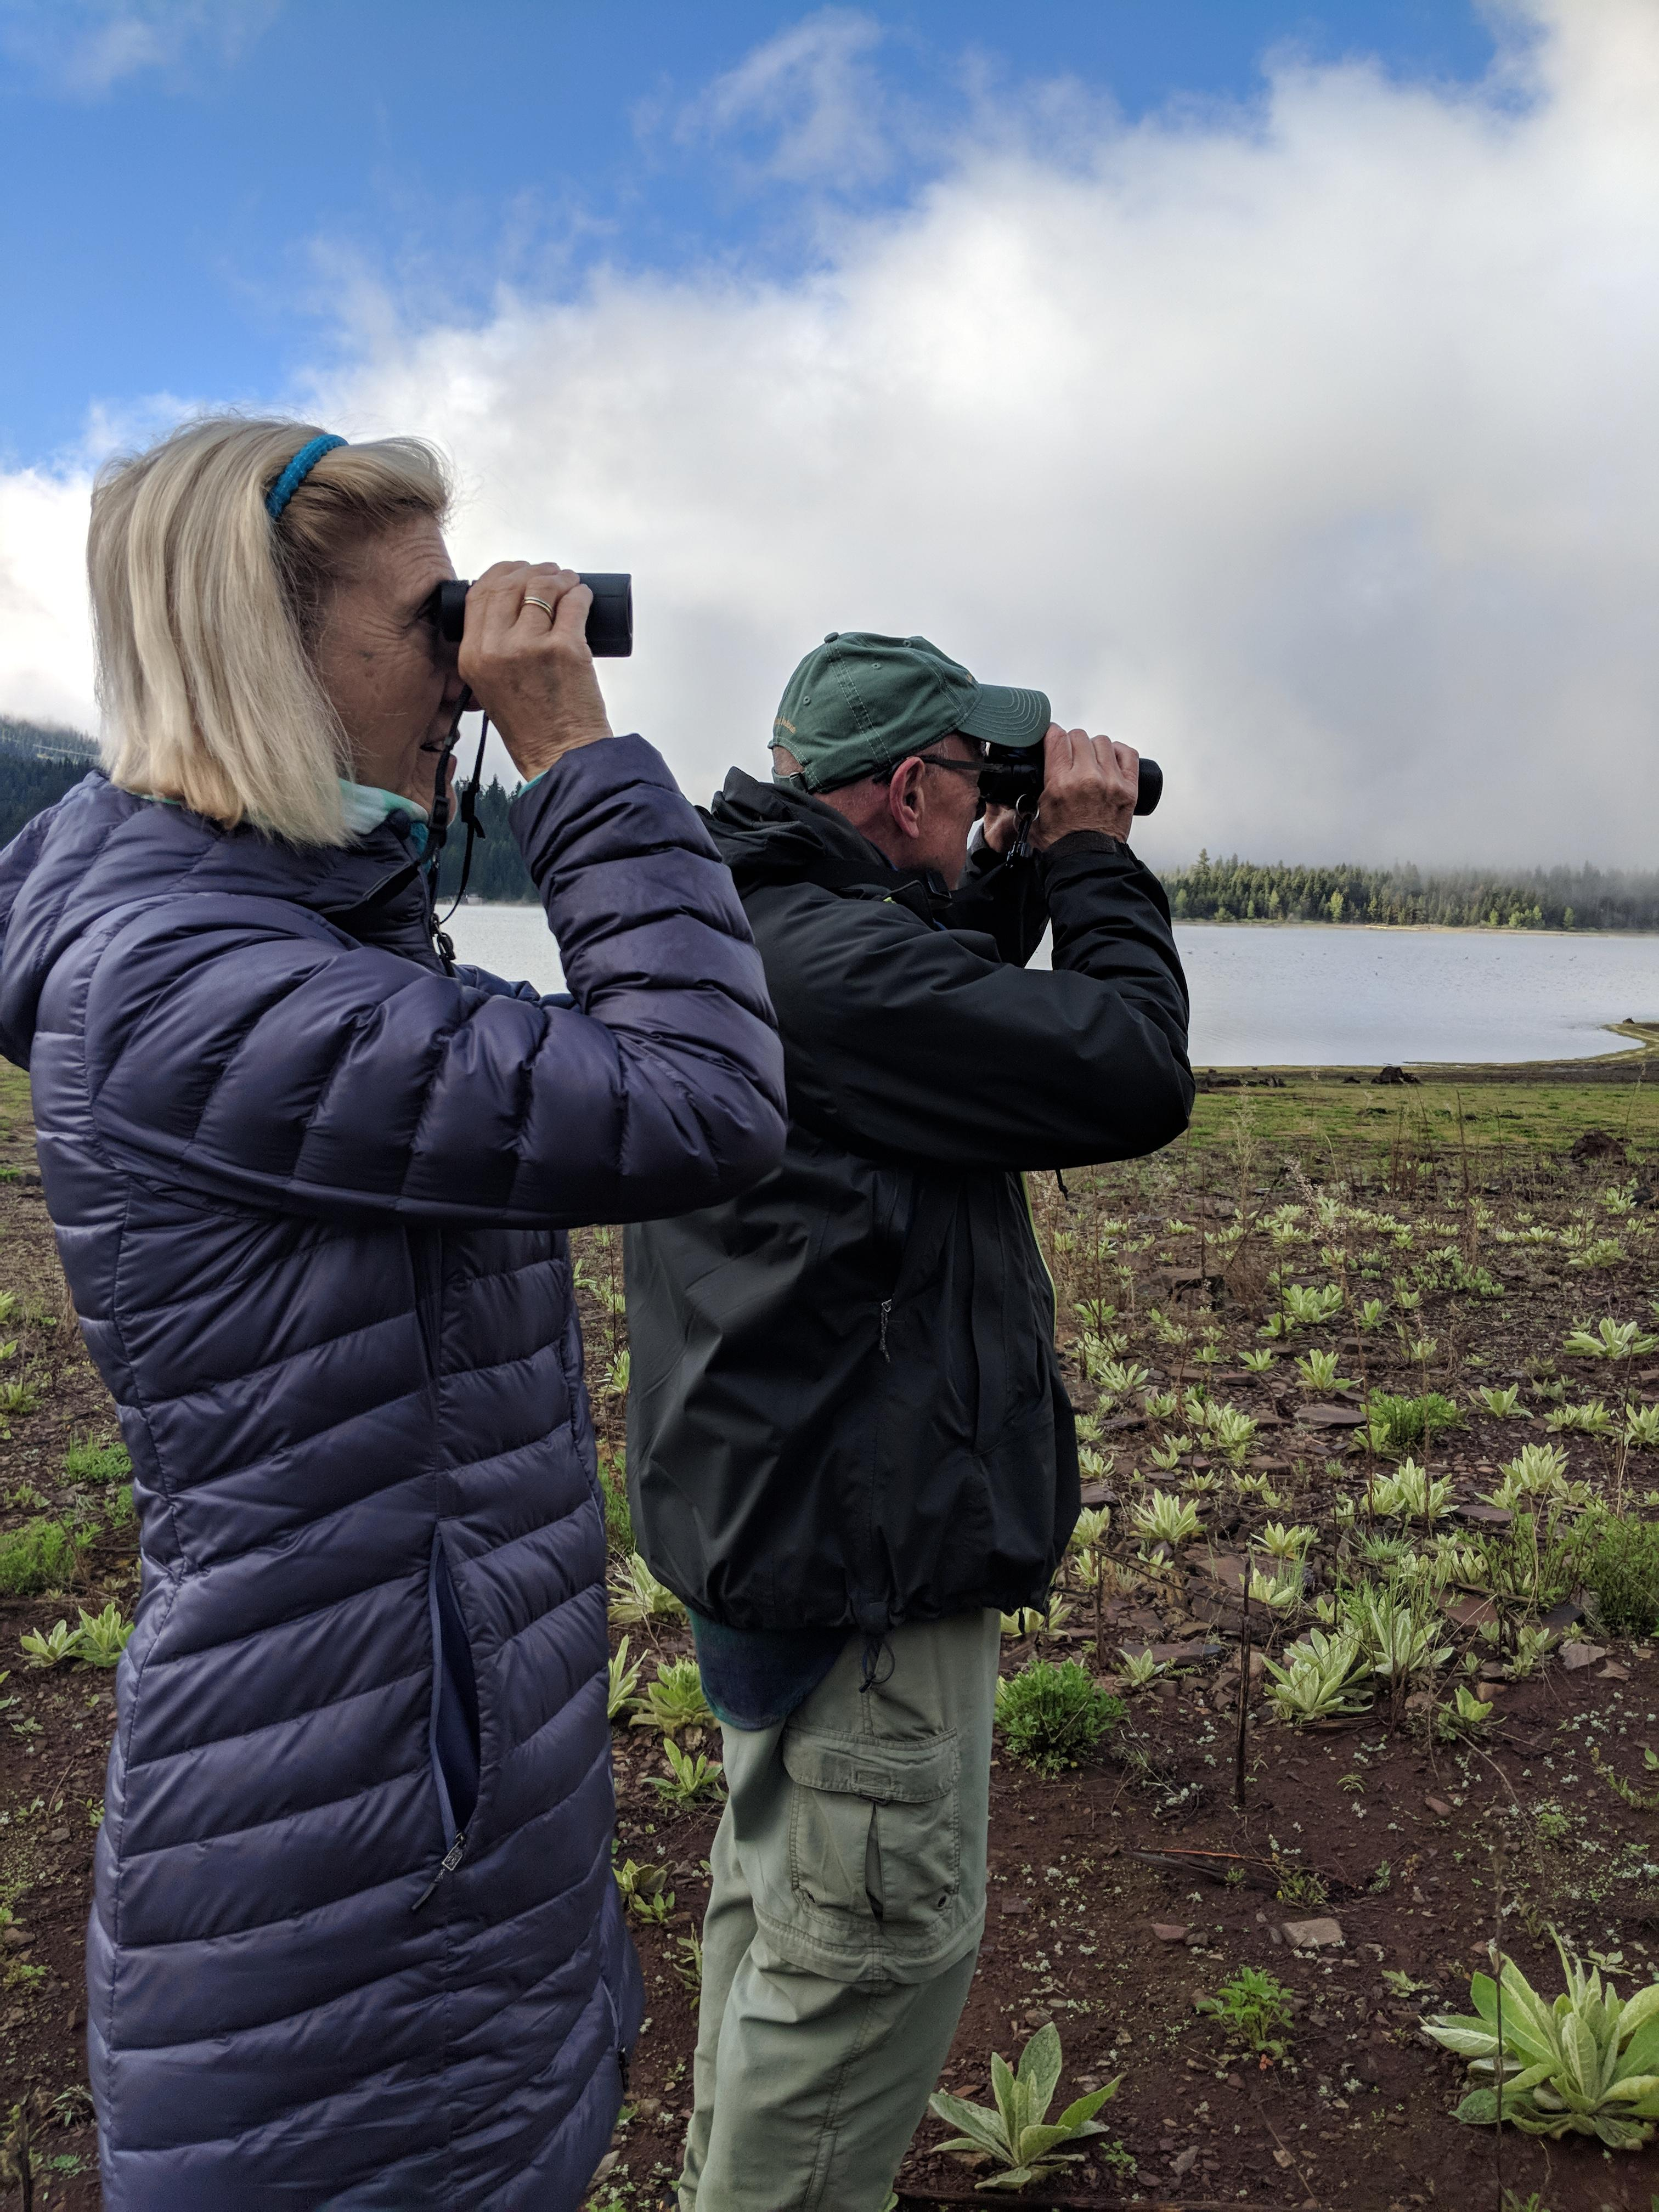 Photo by Shannon BrowneBioBlitz participants look for birds near Hyatt Lake.